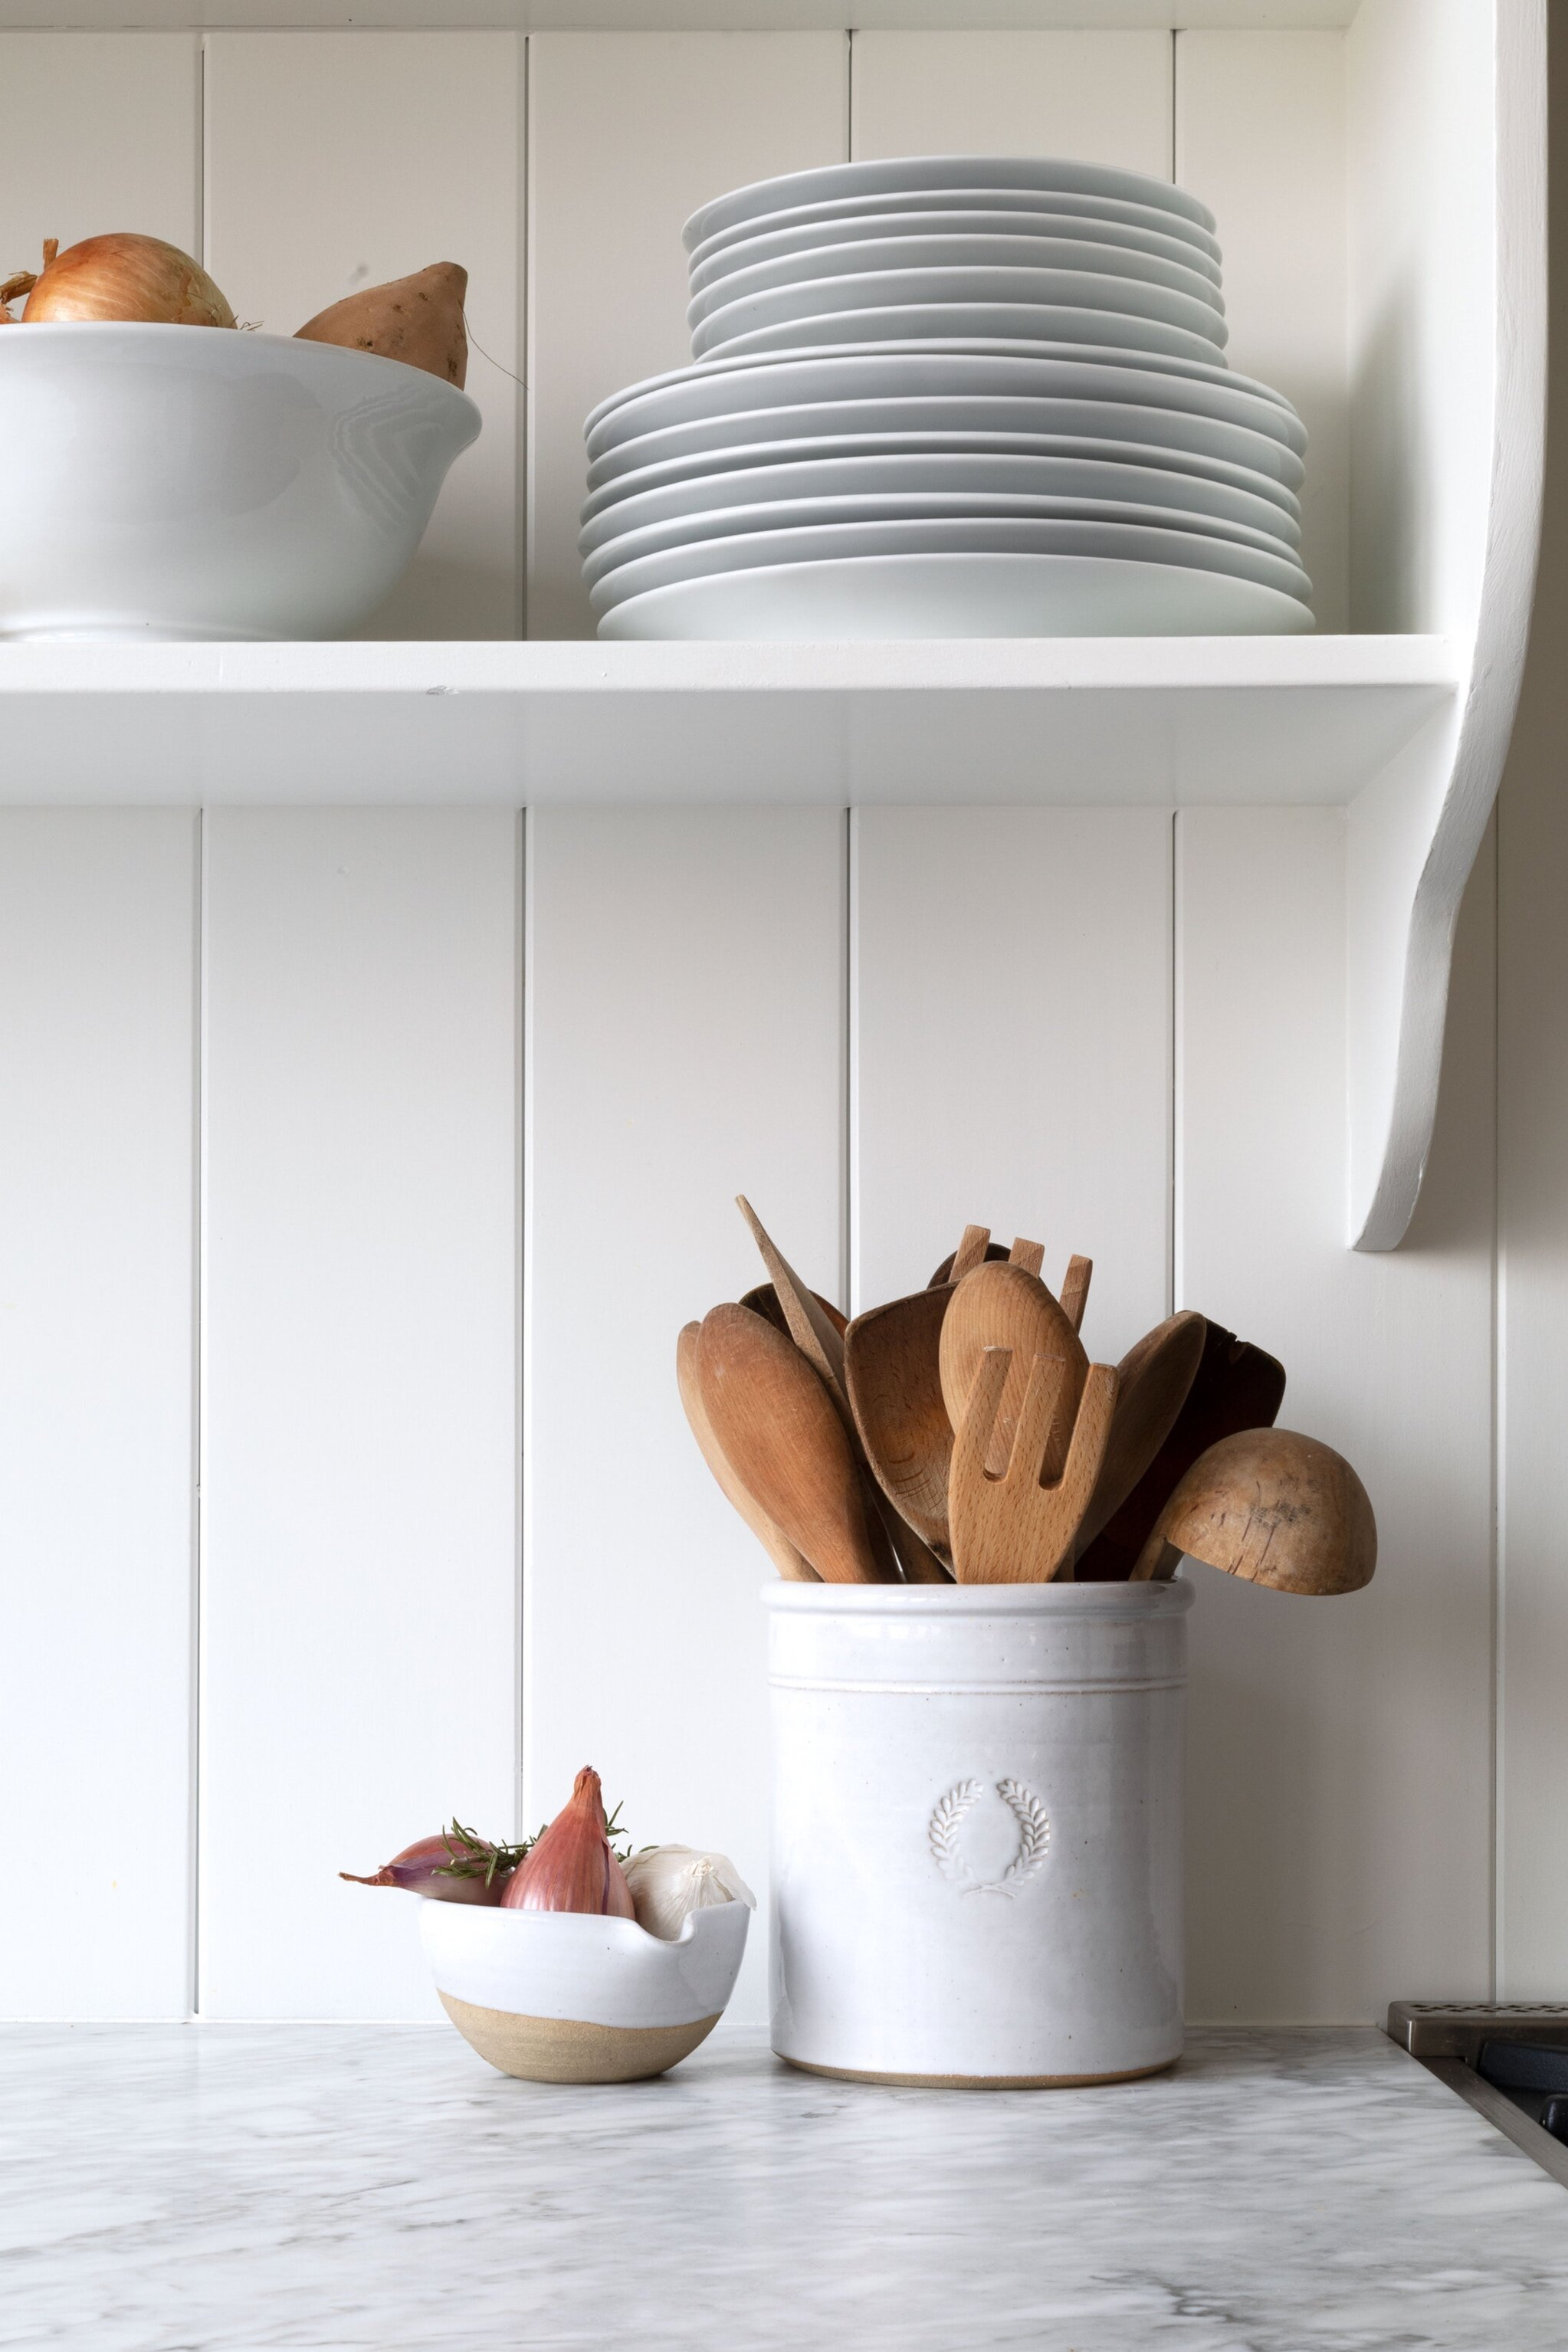 The-Grit-and-Polish---Farmhouse-Country-Kitchen-Reveal-Farmhouse-Pottery-Crock.jpg